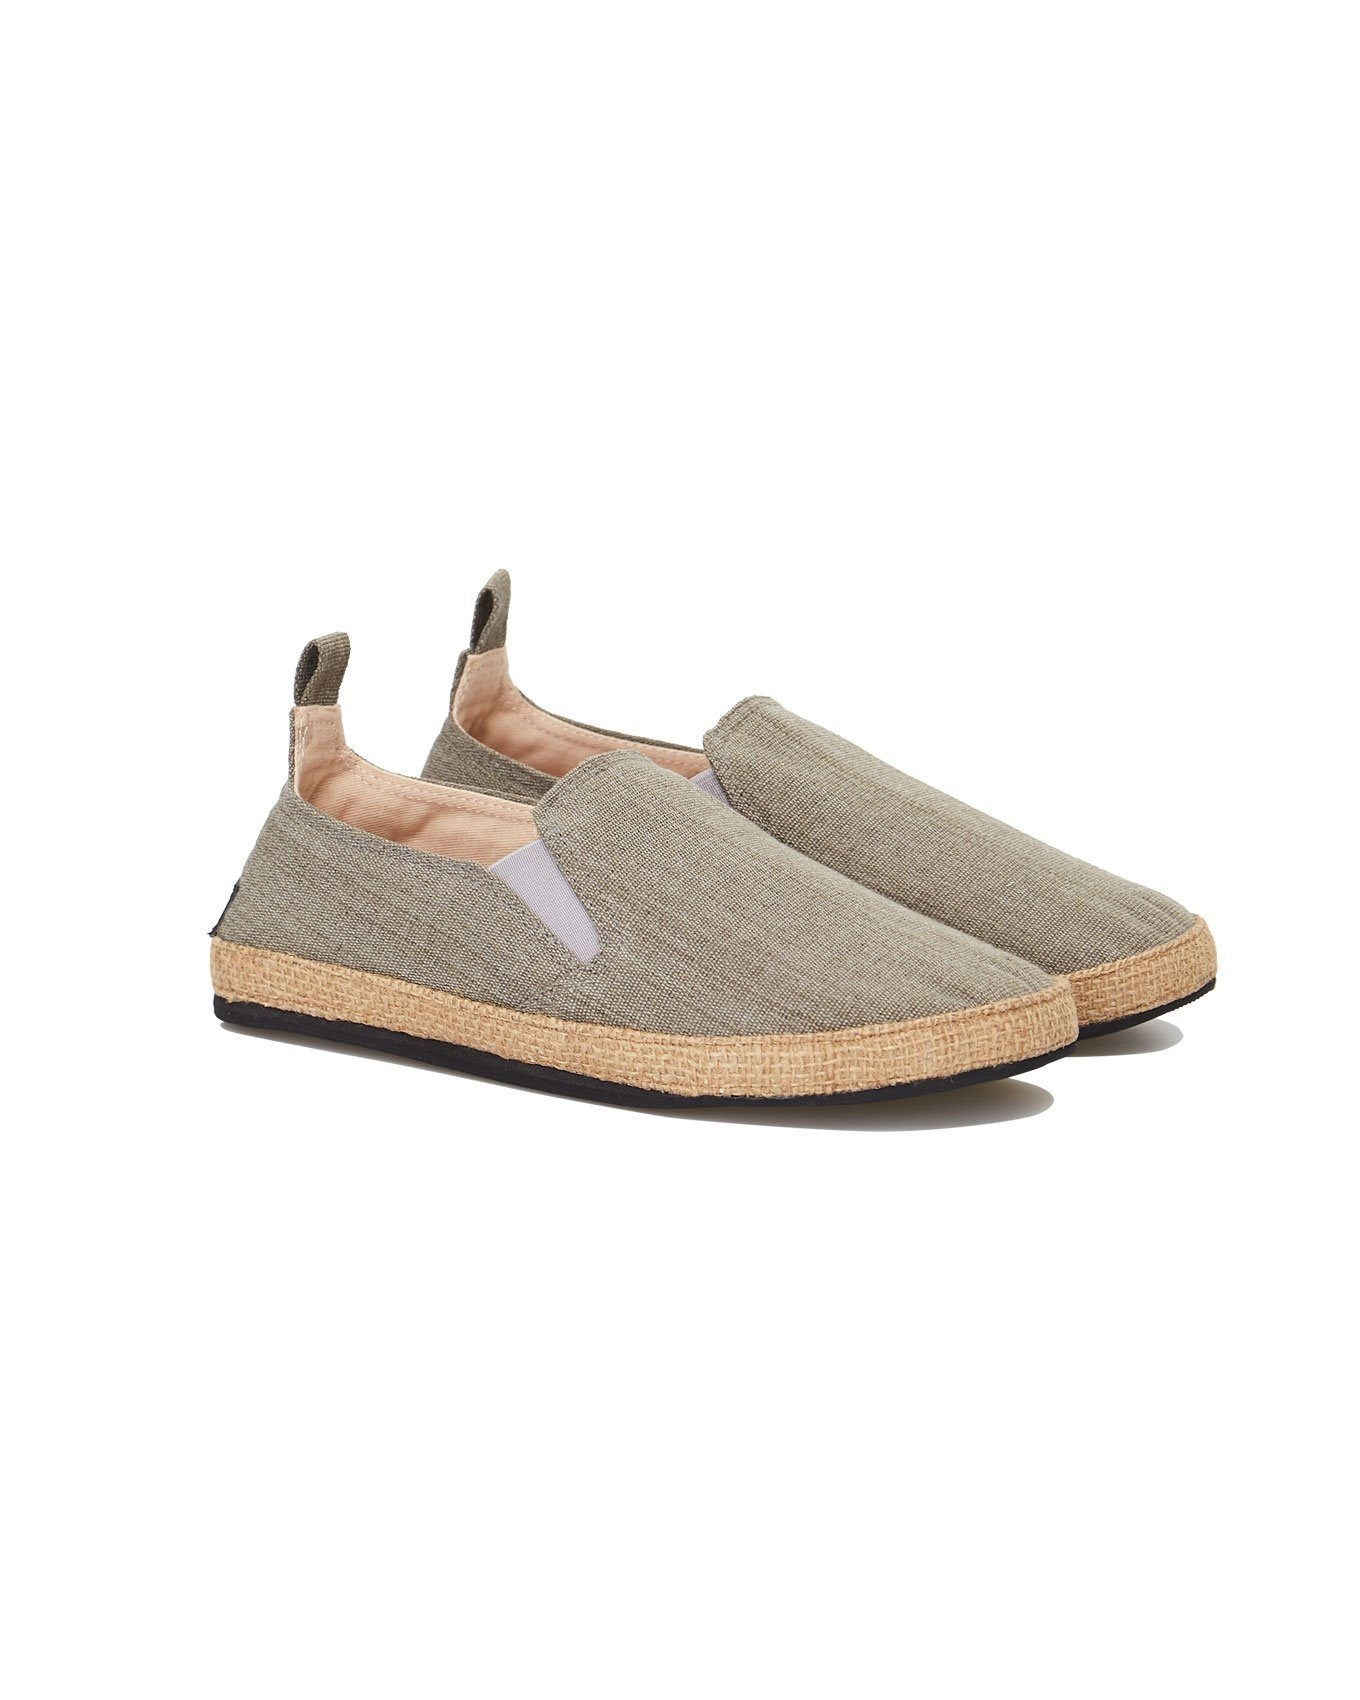 Shoes - KUNG FU Mens Shoe Khaki